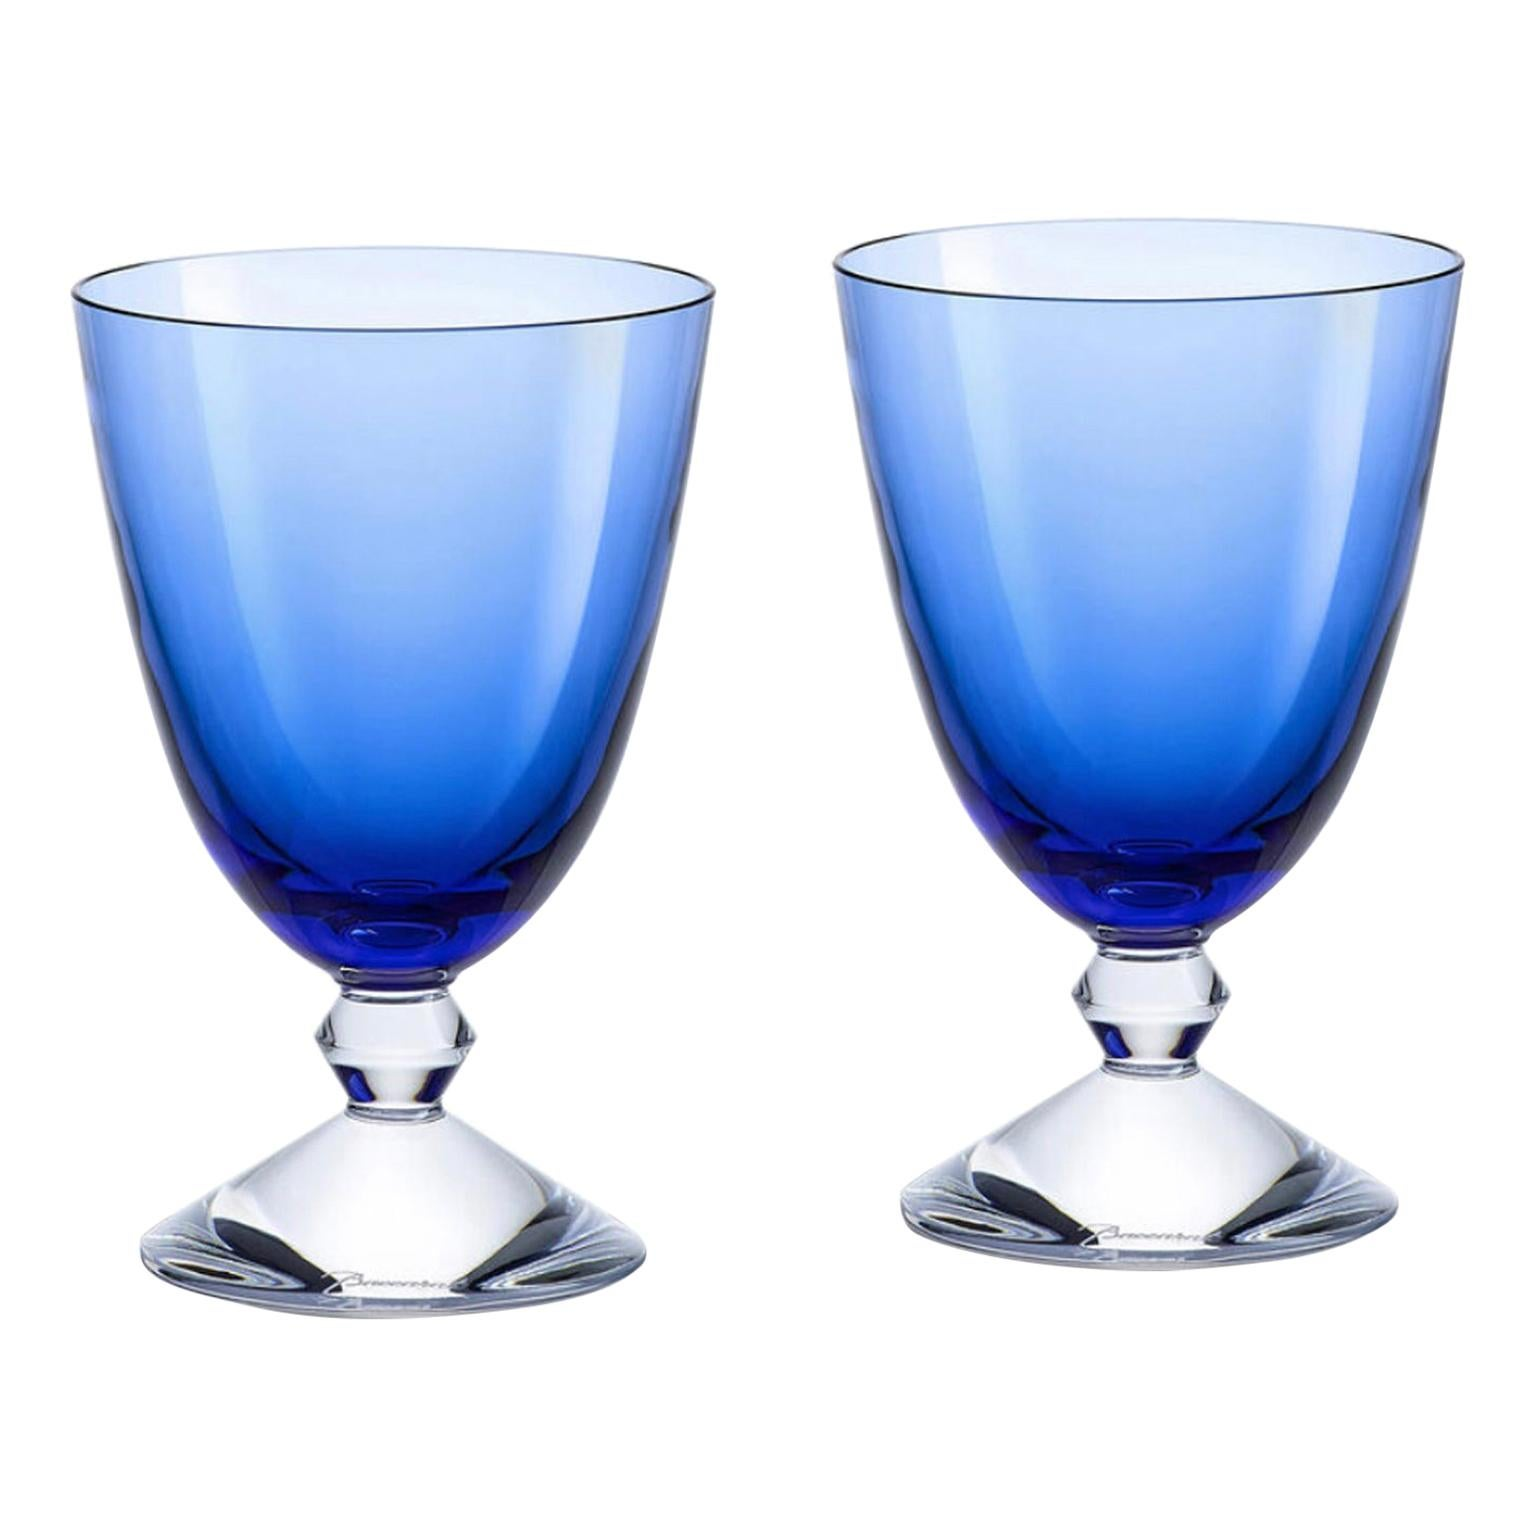 Pair of Baccarat Crystal Water Glasses Light Blue